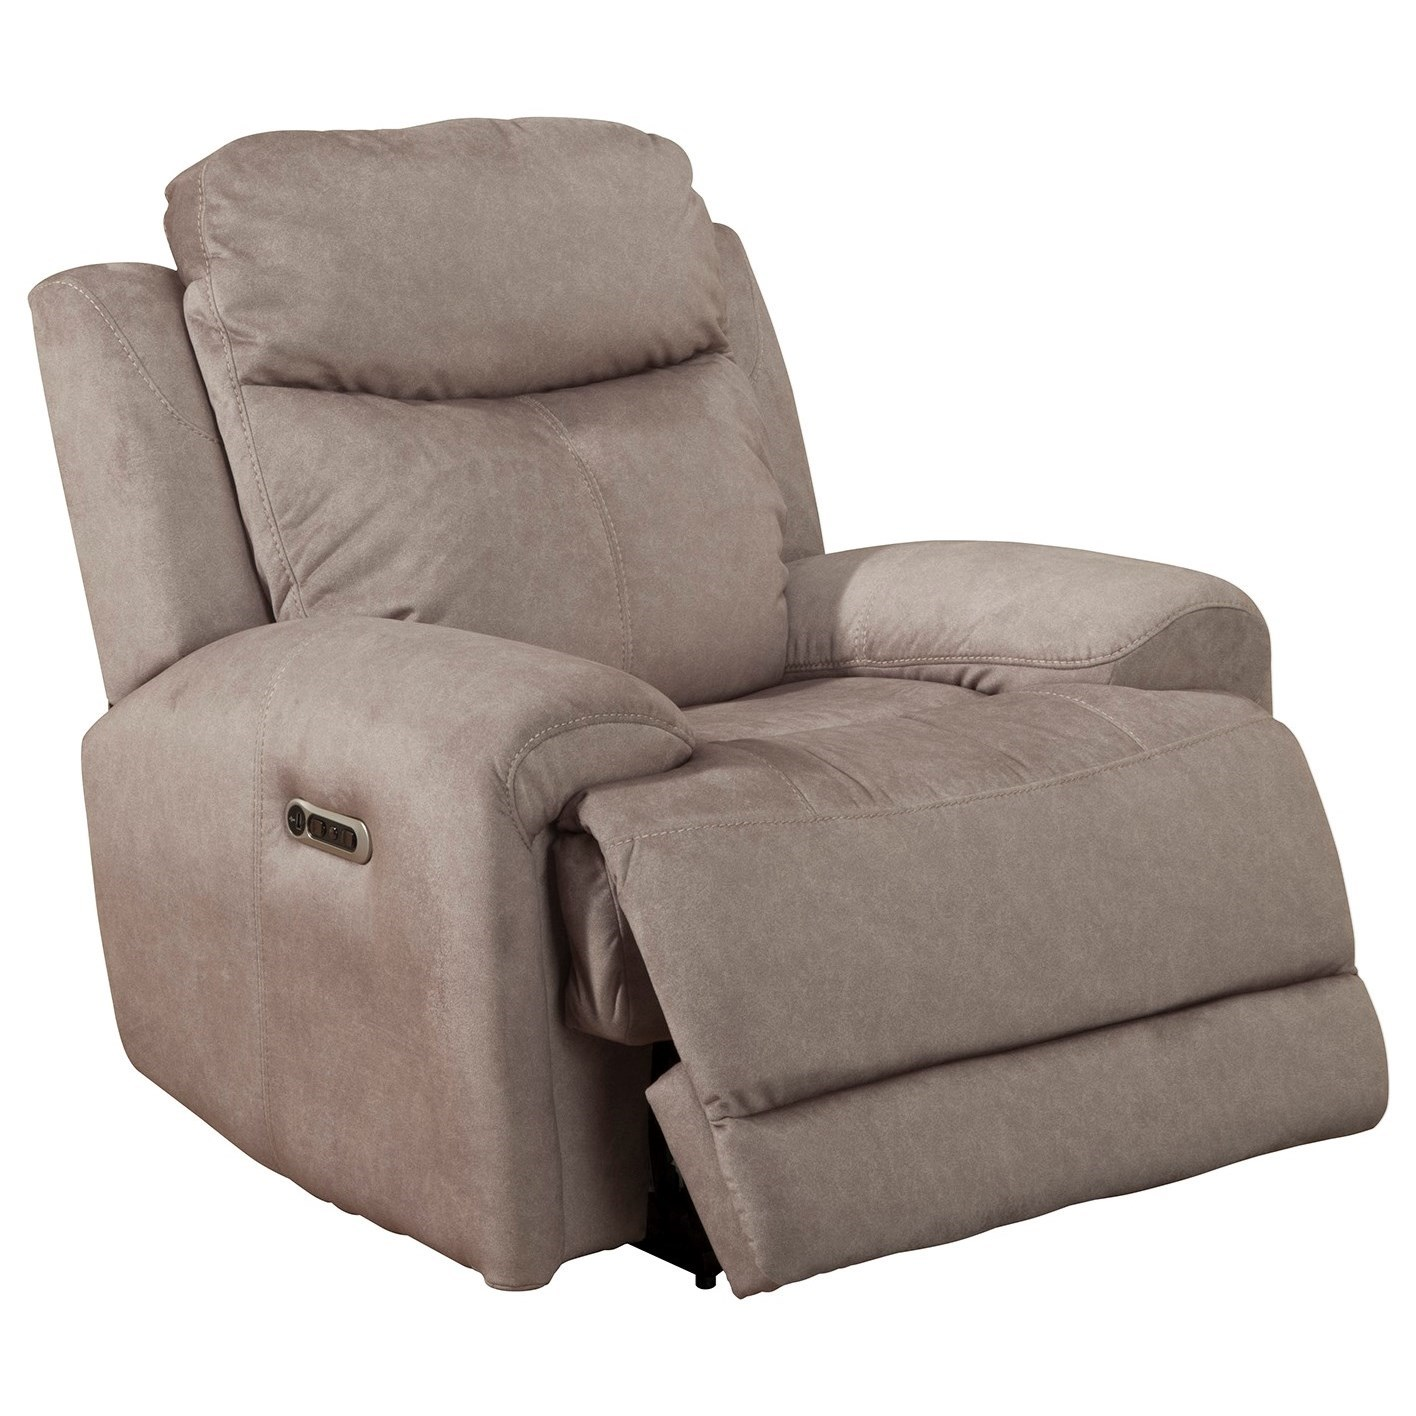 RECLINER PWR W/ USB, PWR HDR & GEL FOAM